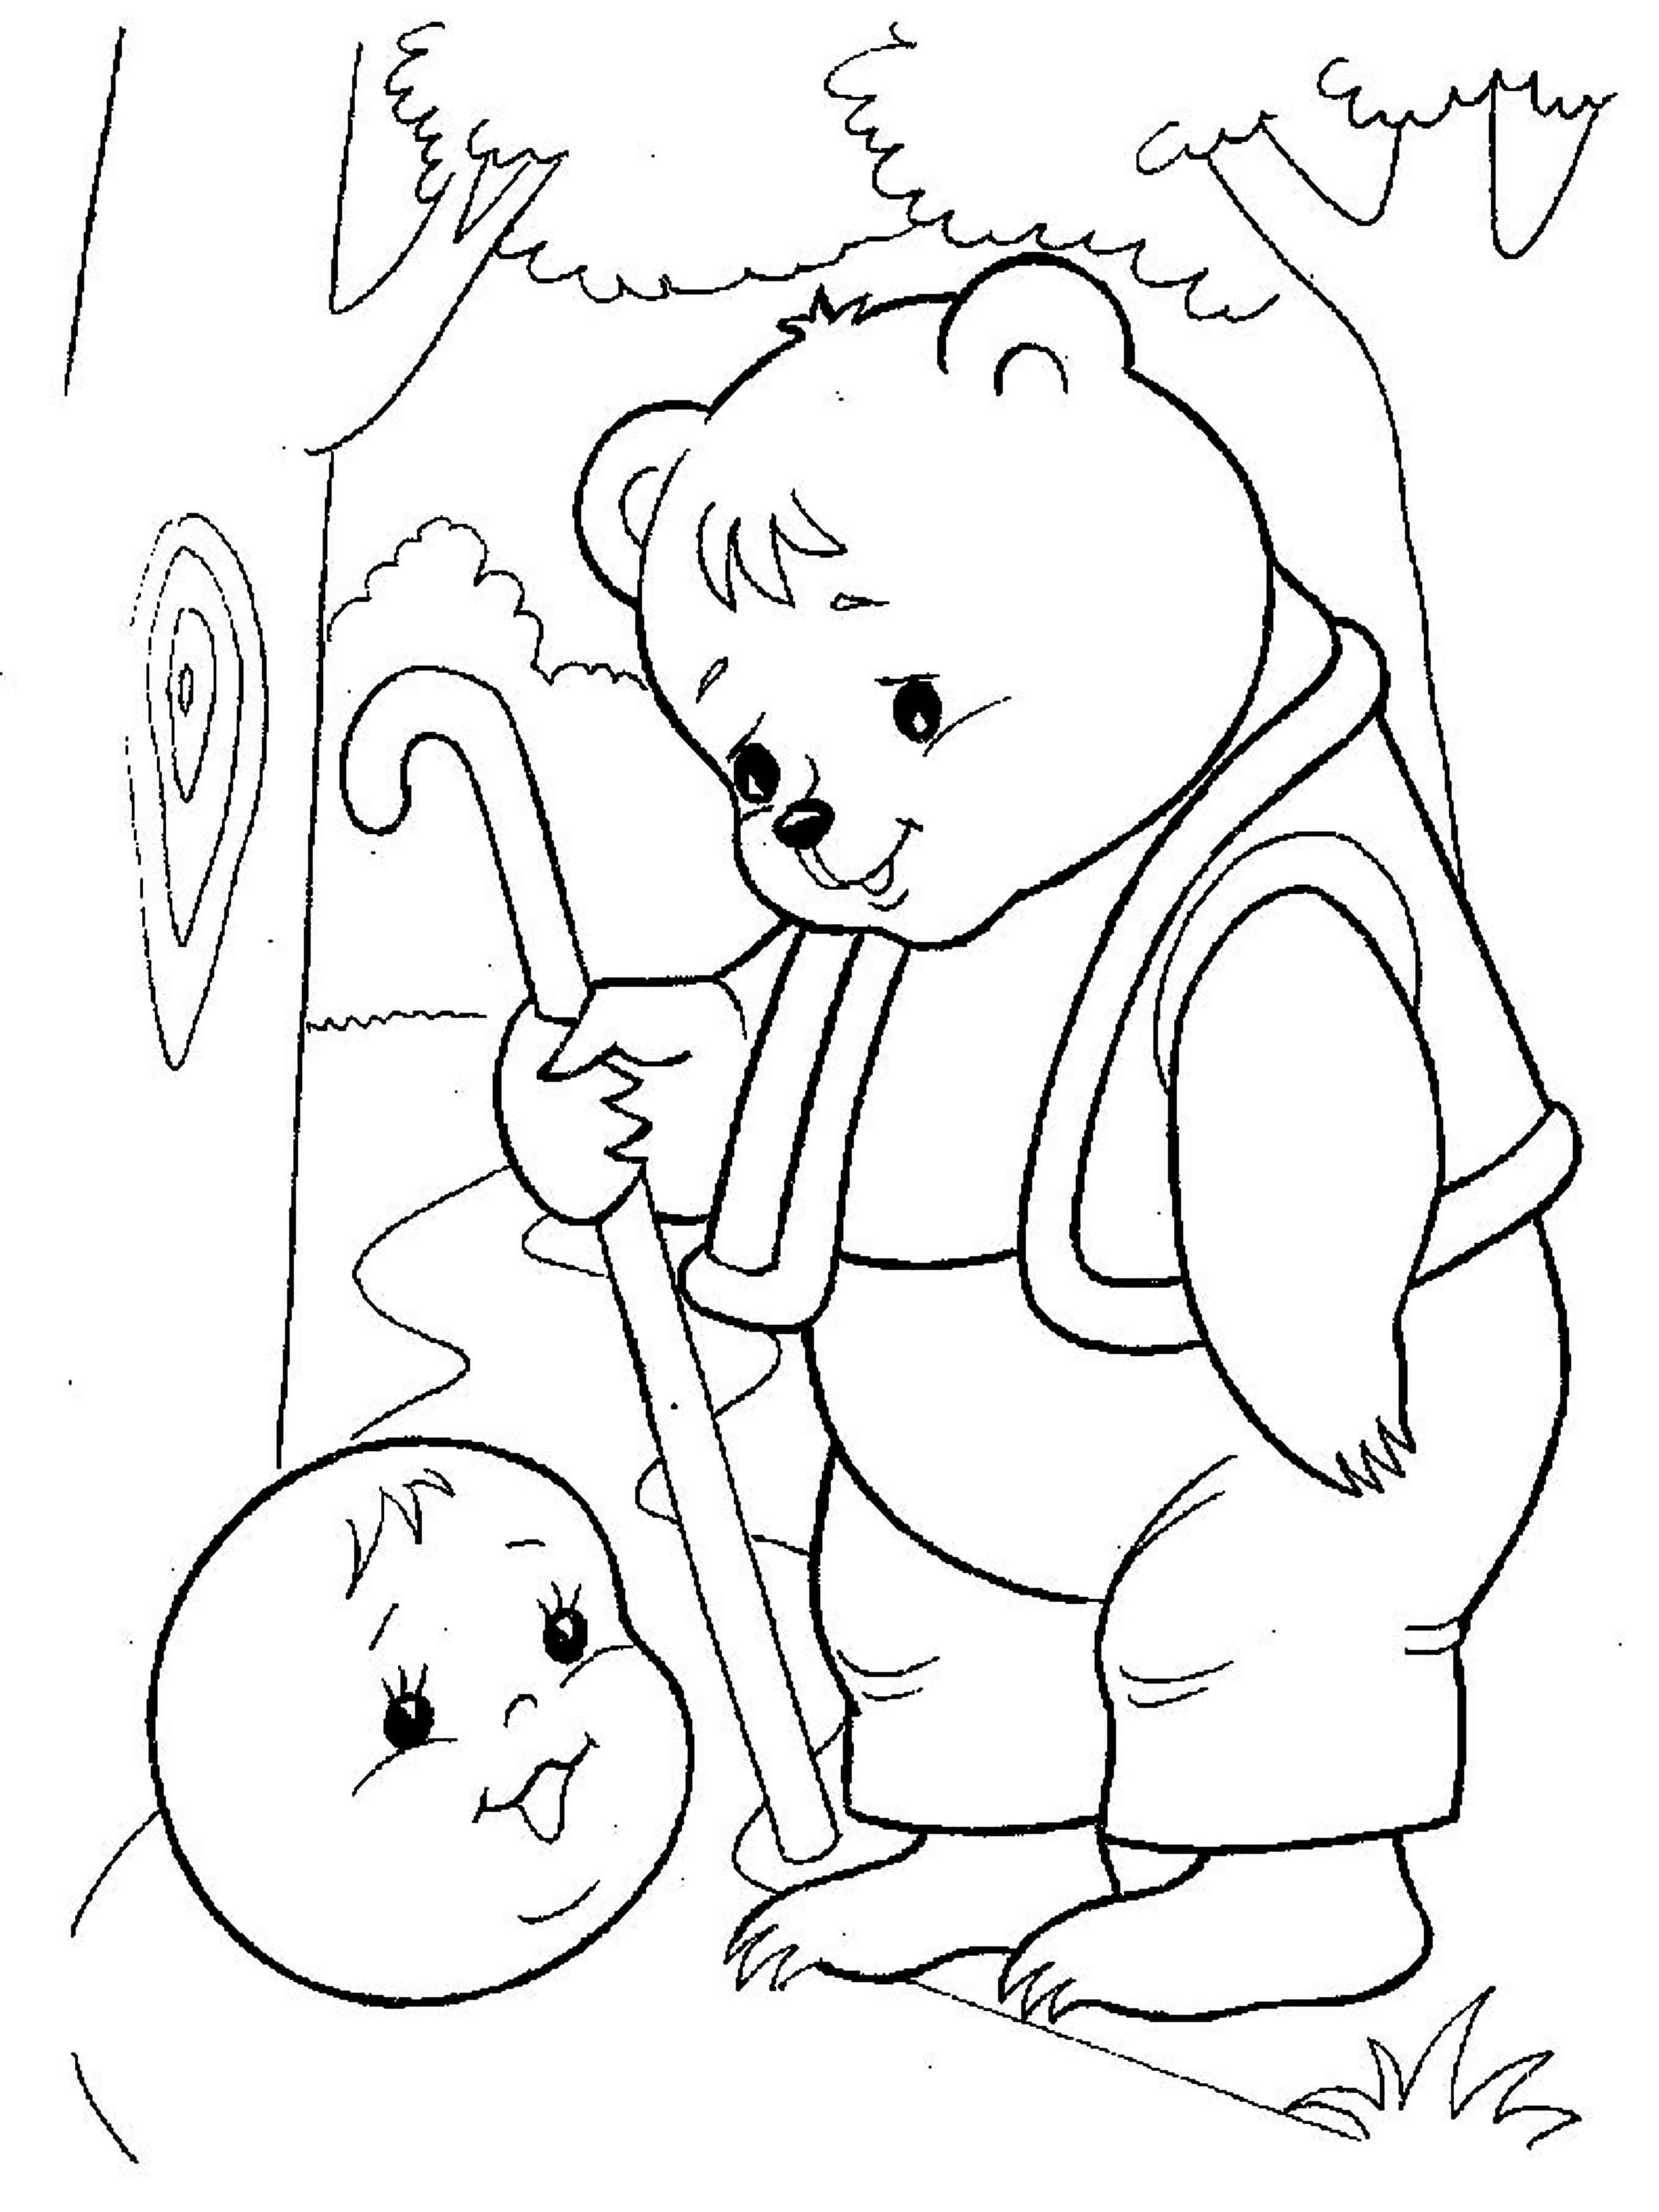 Coloring coloring pages to the tale bun Gingerbread man, bear, bear, bear and bun